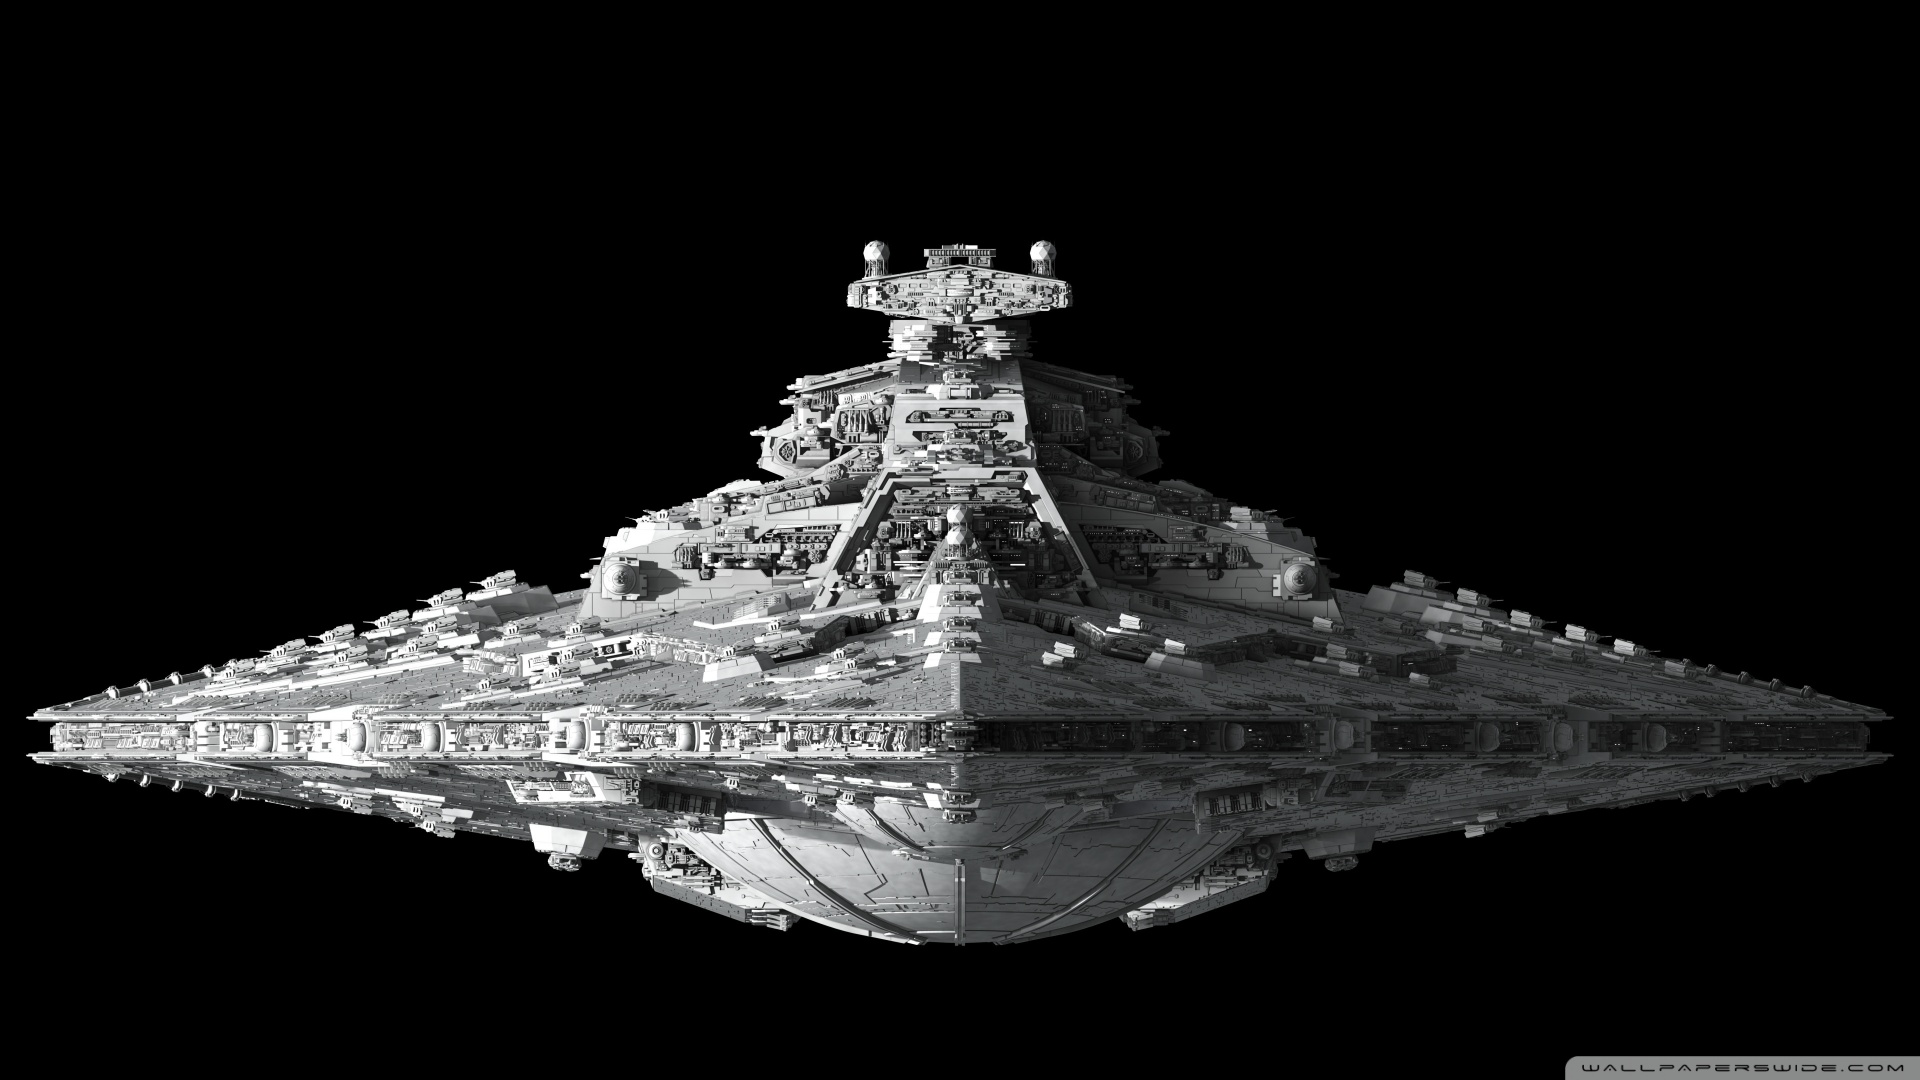 1920x1080 Star Wars Destroyer desktop PC and Mac wallpaper